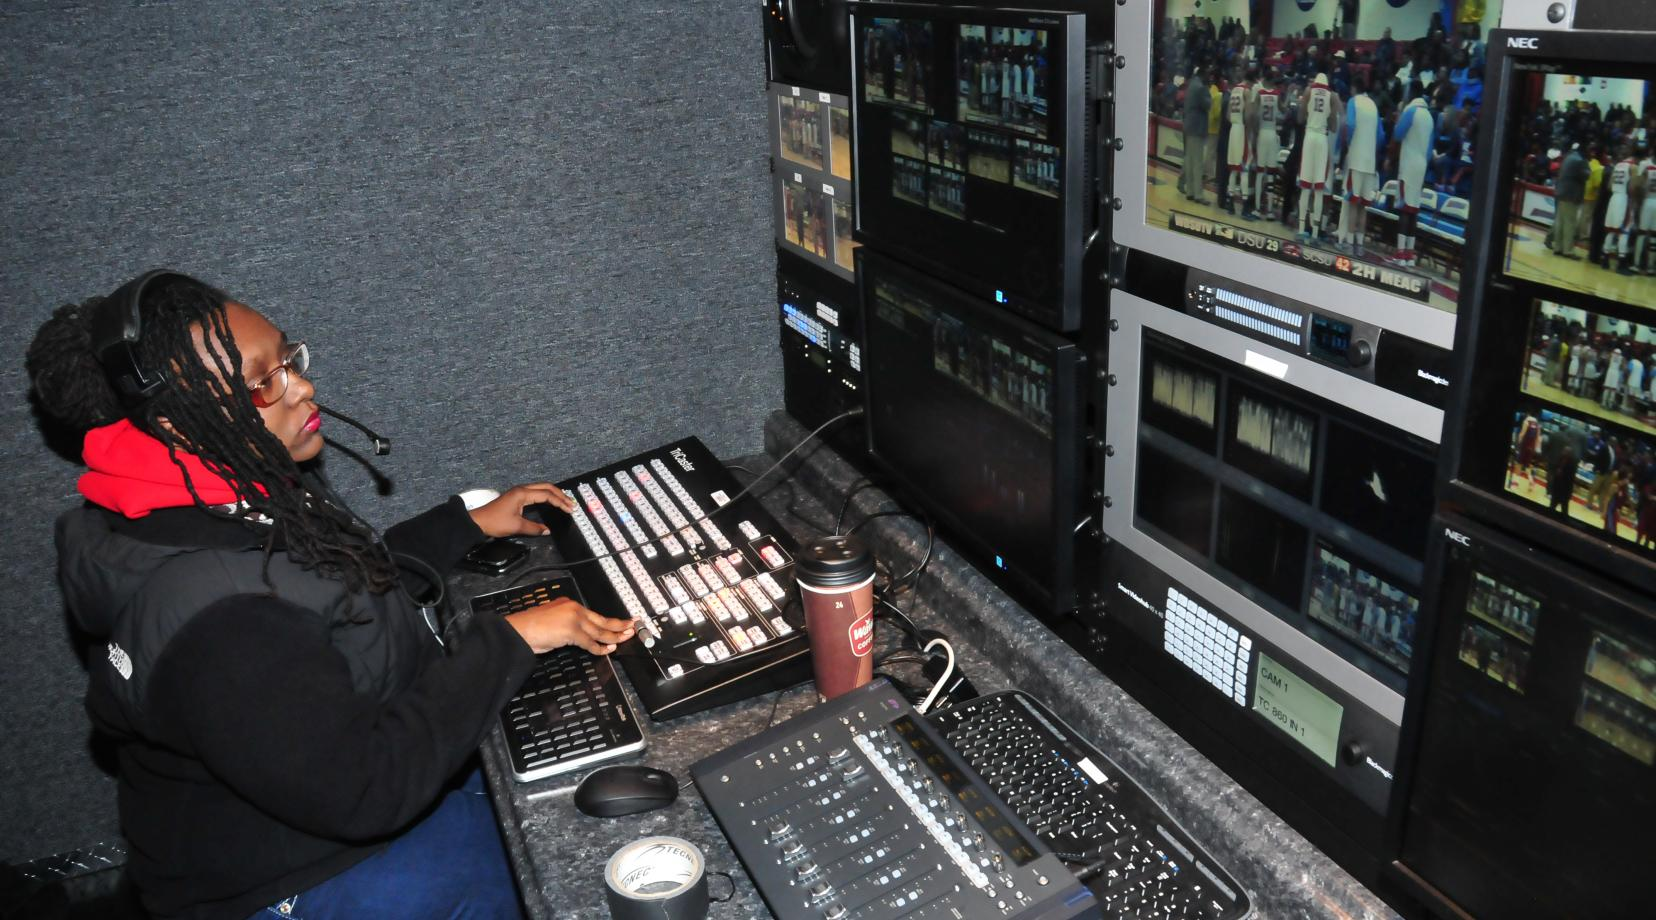 Jasmine Alford works a Hornet basketball game in the Mobile Video Production Trailer. The production trailer has reduced the set-up time for the students and provided them with an excellent hand-on experience environment.